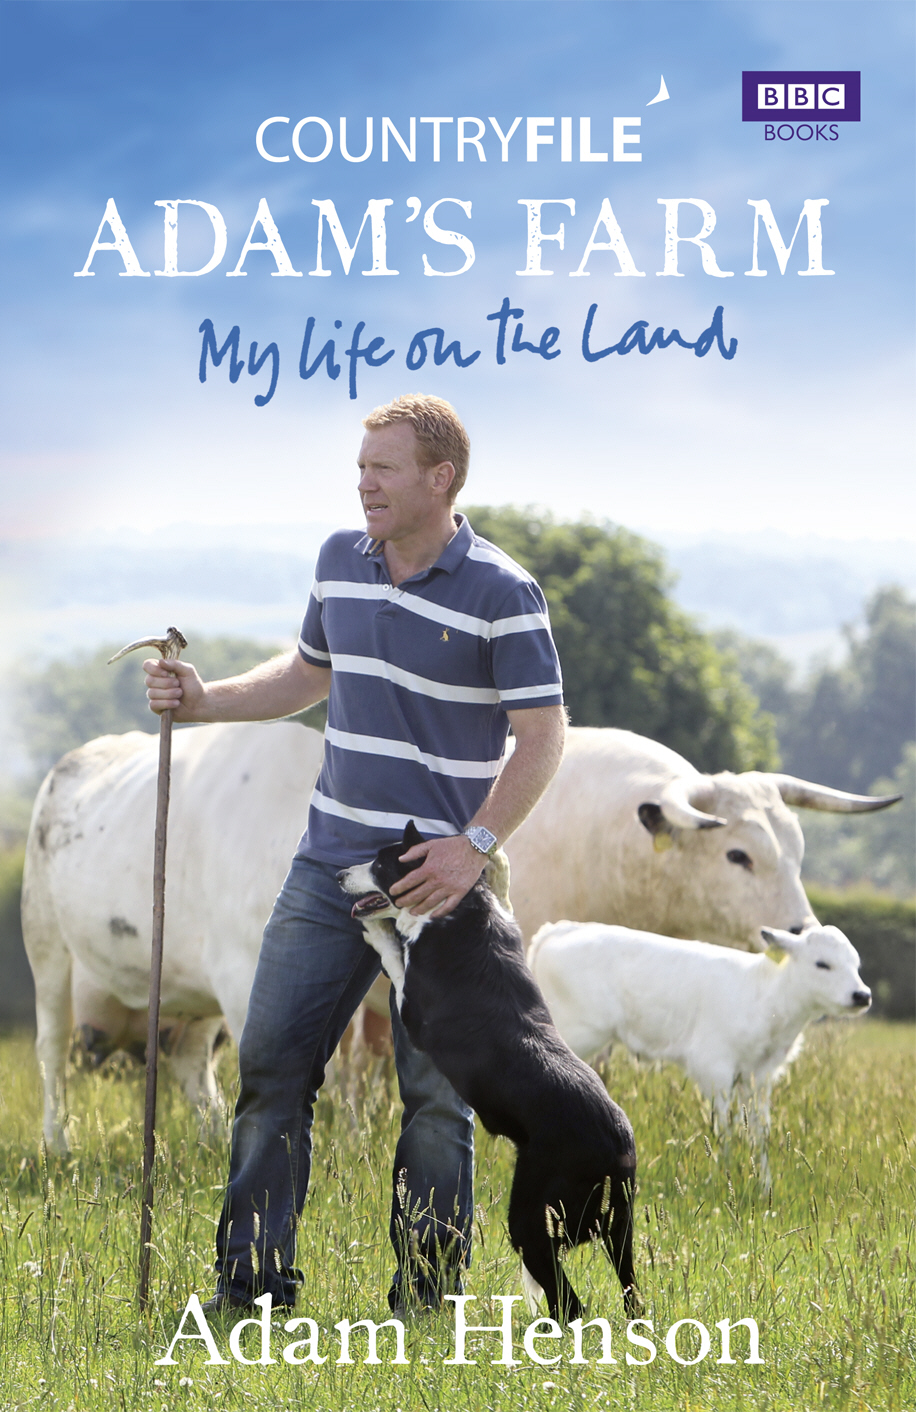 Countryfile: Adam's Farm My Life on the Land